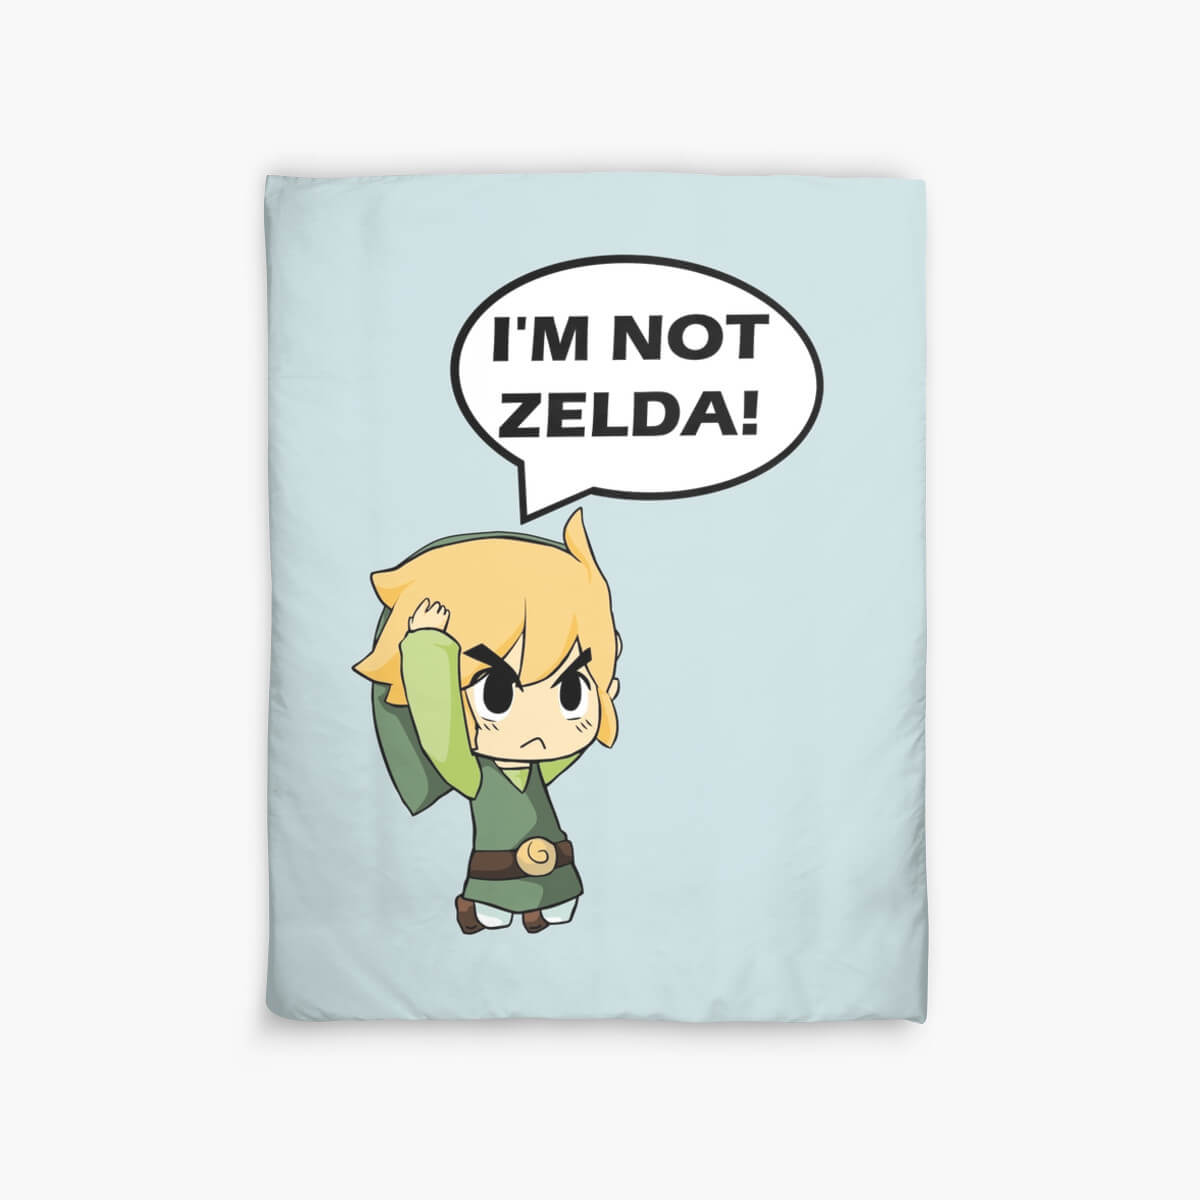 legend of zelda covers set 11